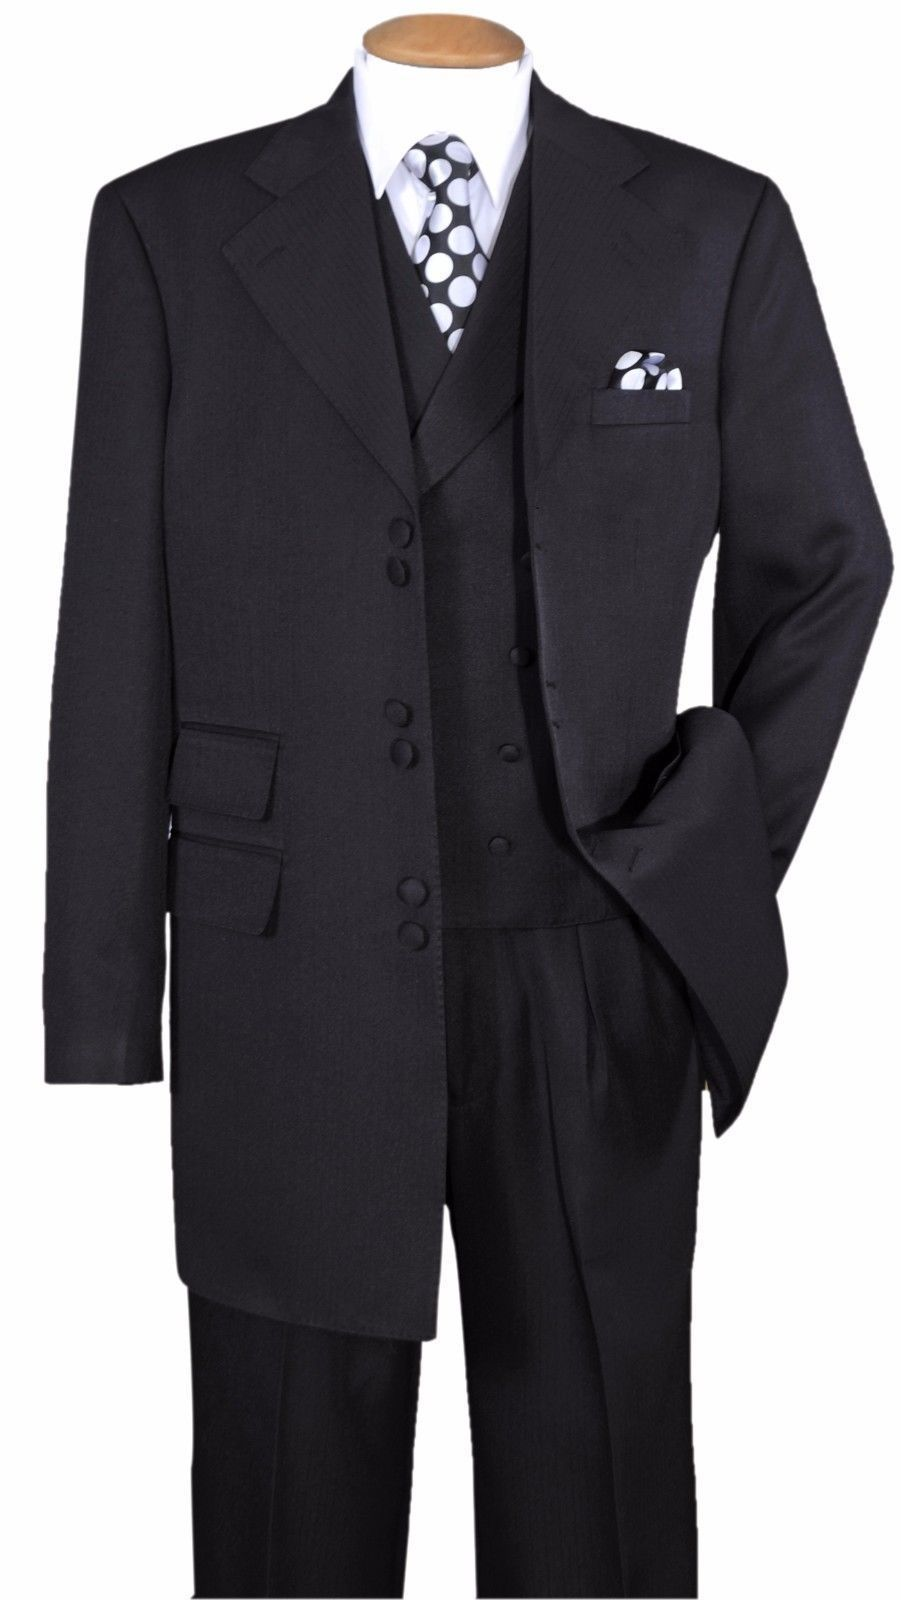 Milano Moda Suit 2917V-Black - Church Suits For Less